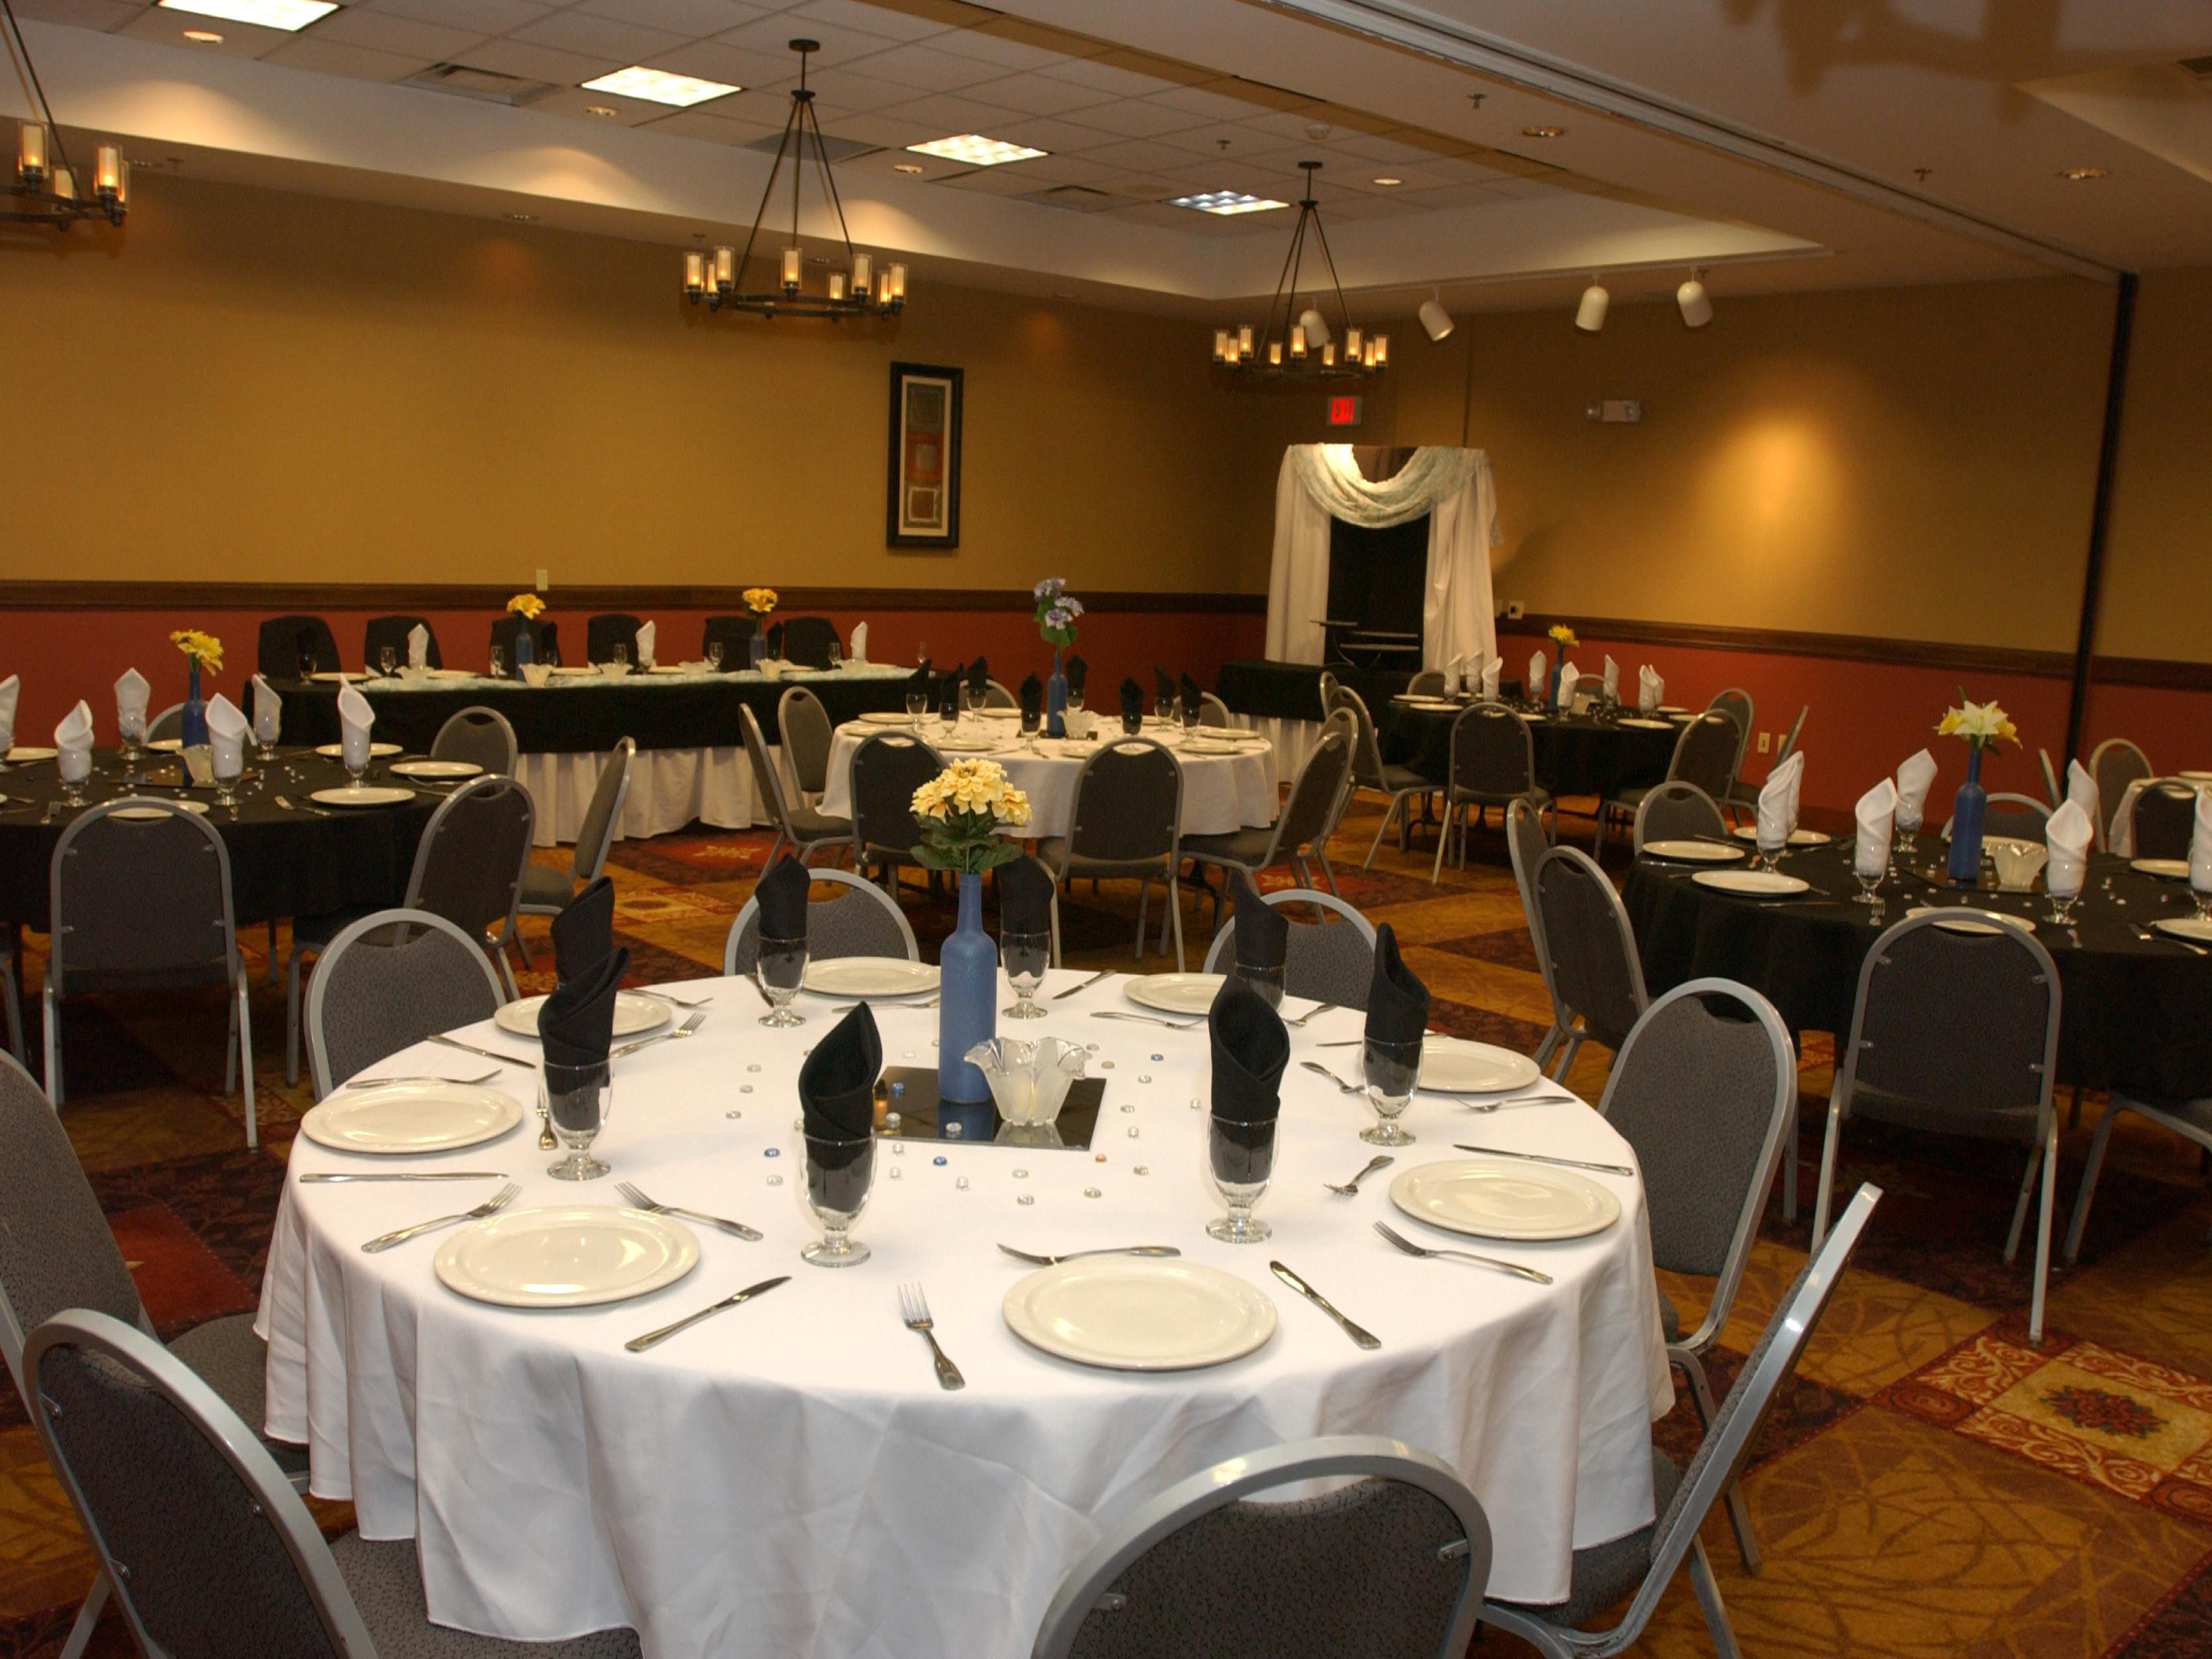 Weddings and banquets up to 300 people